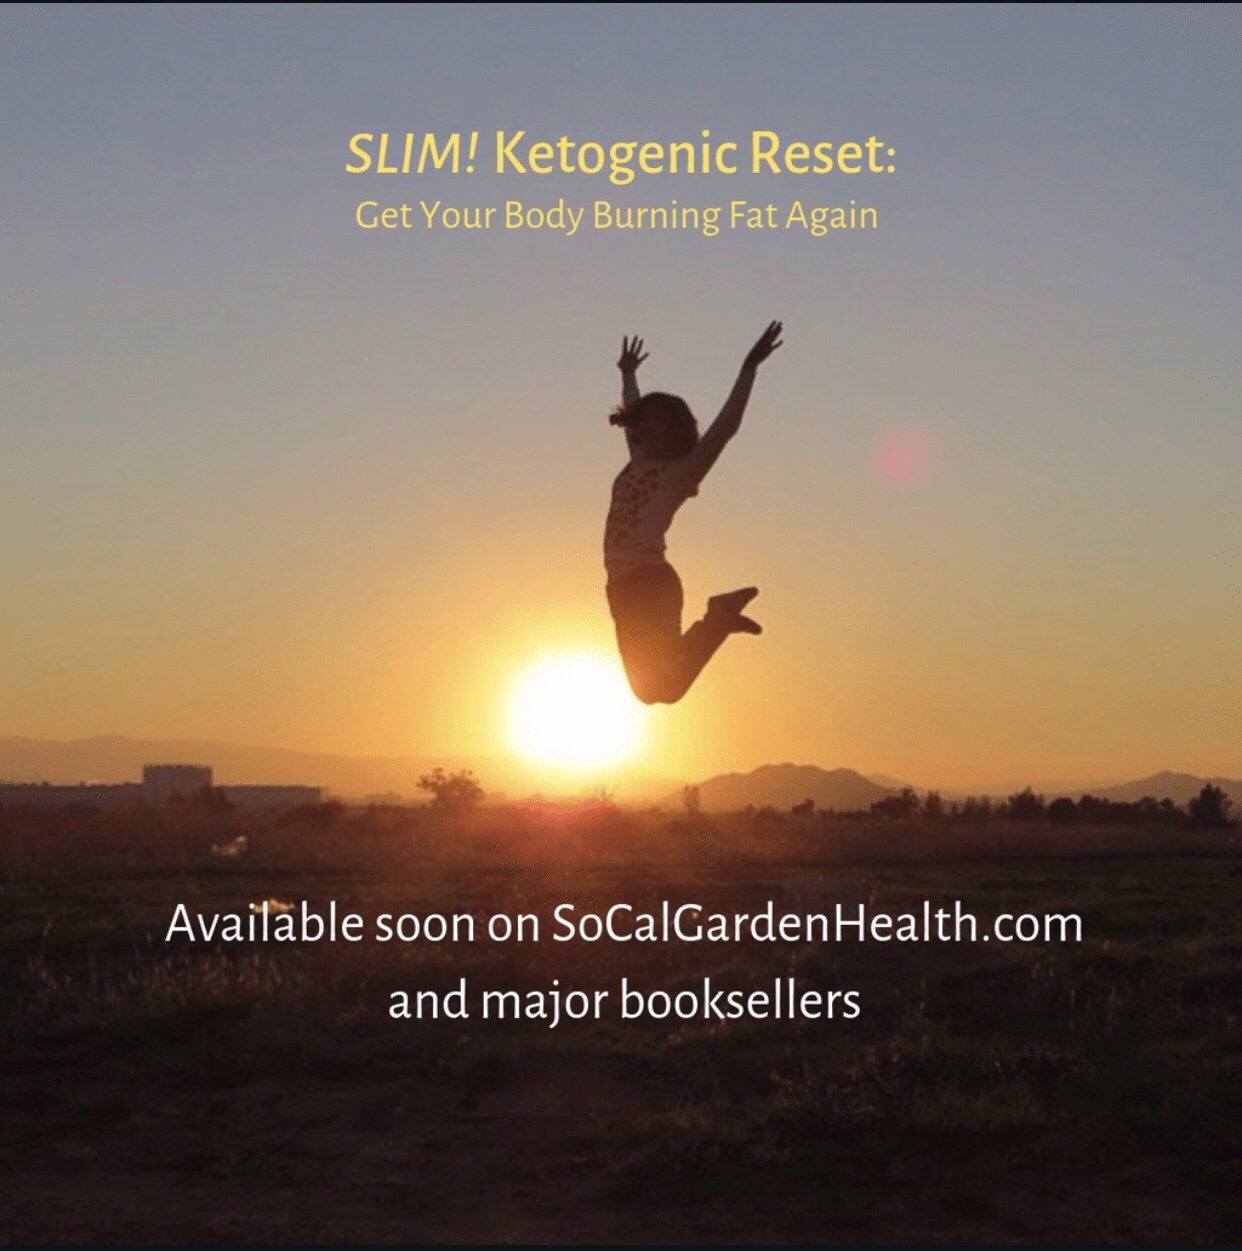 The SLIM! Ketogenic Reset